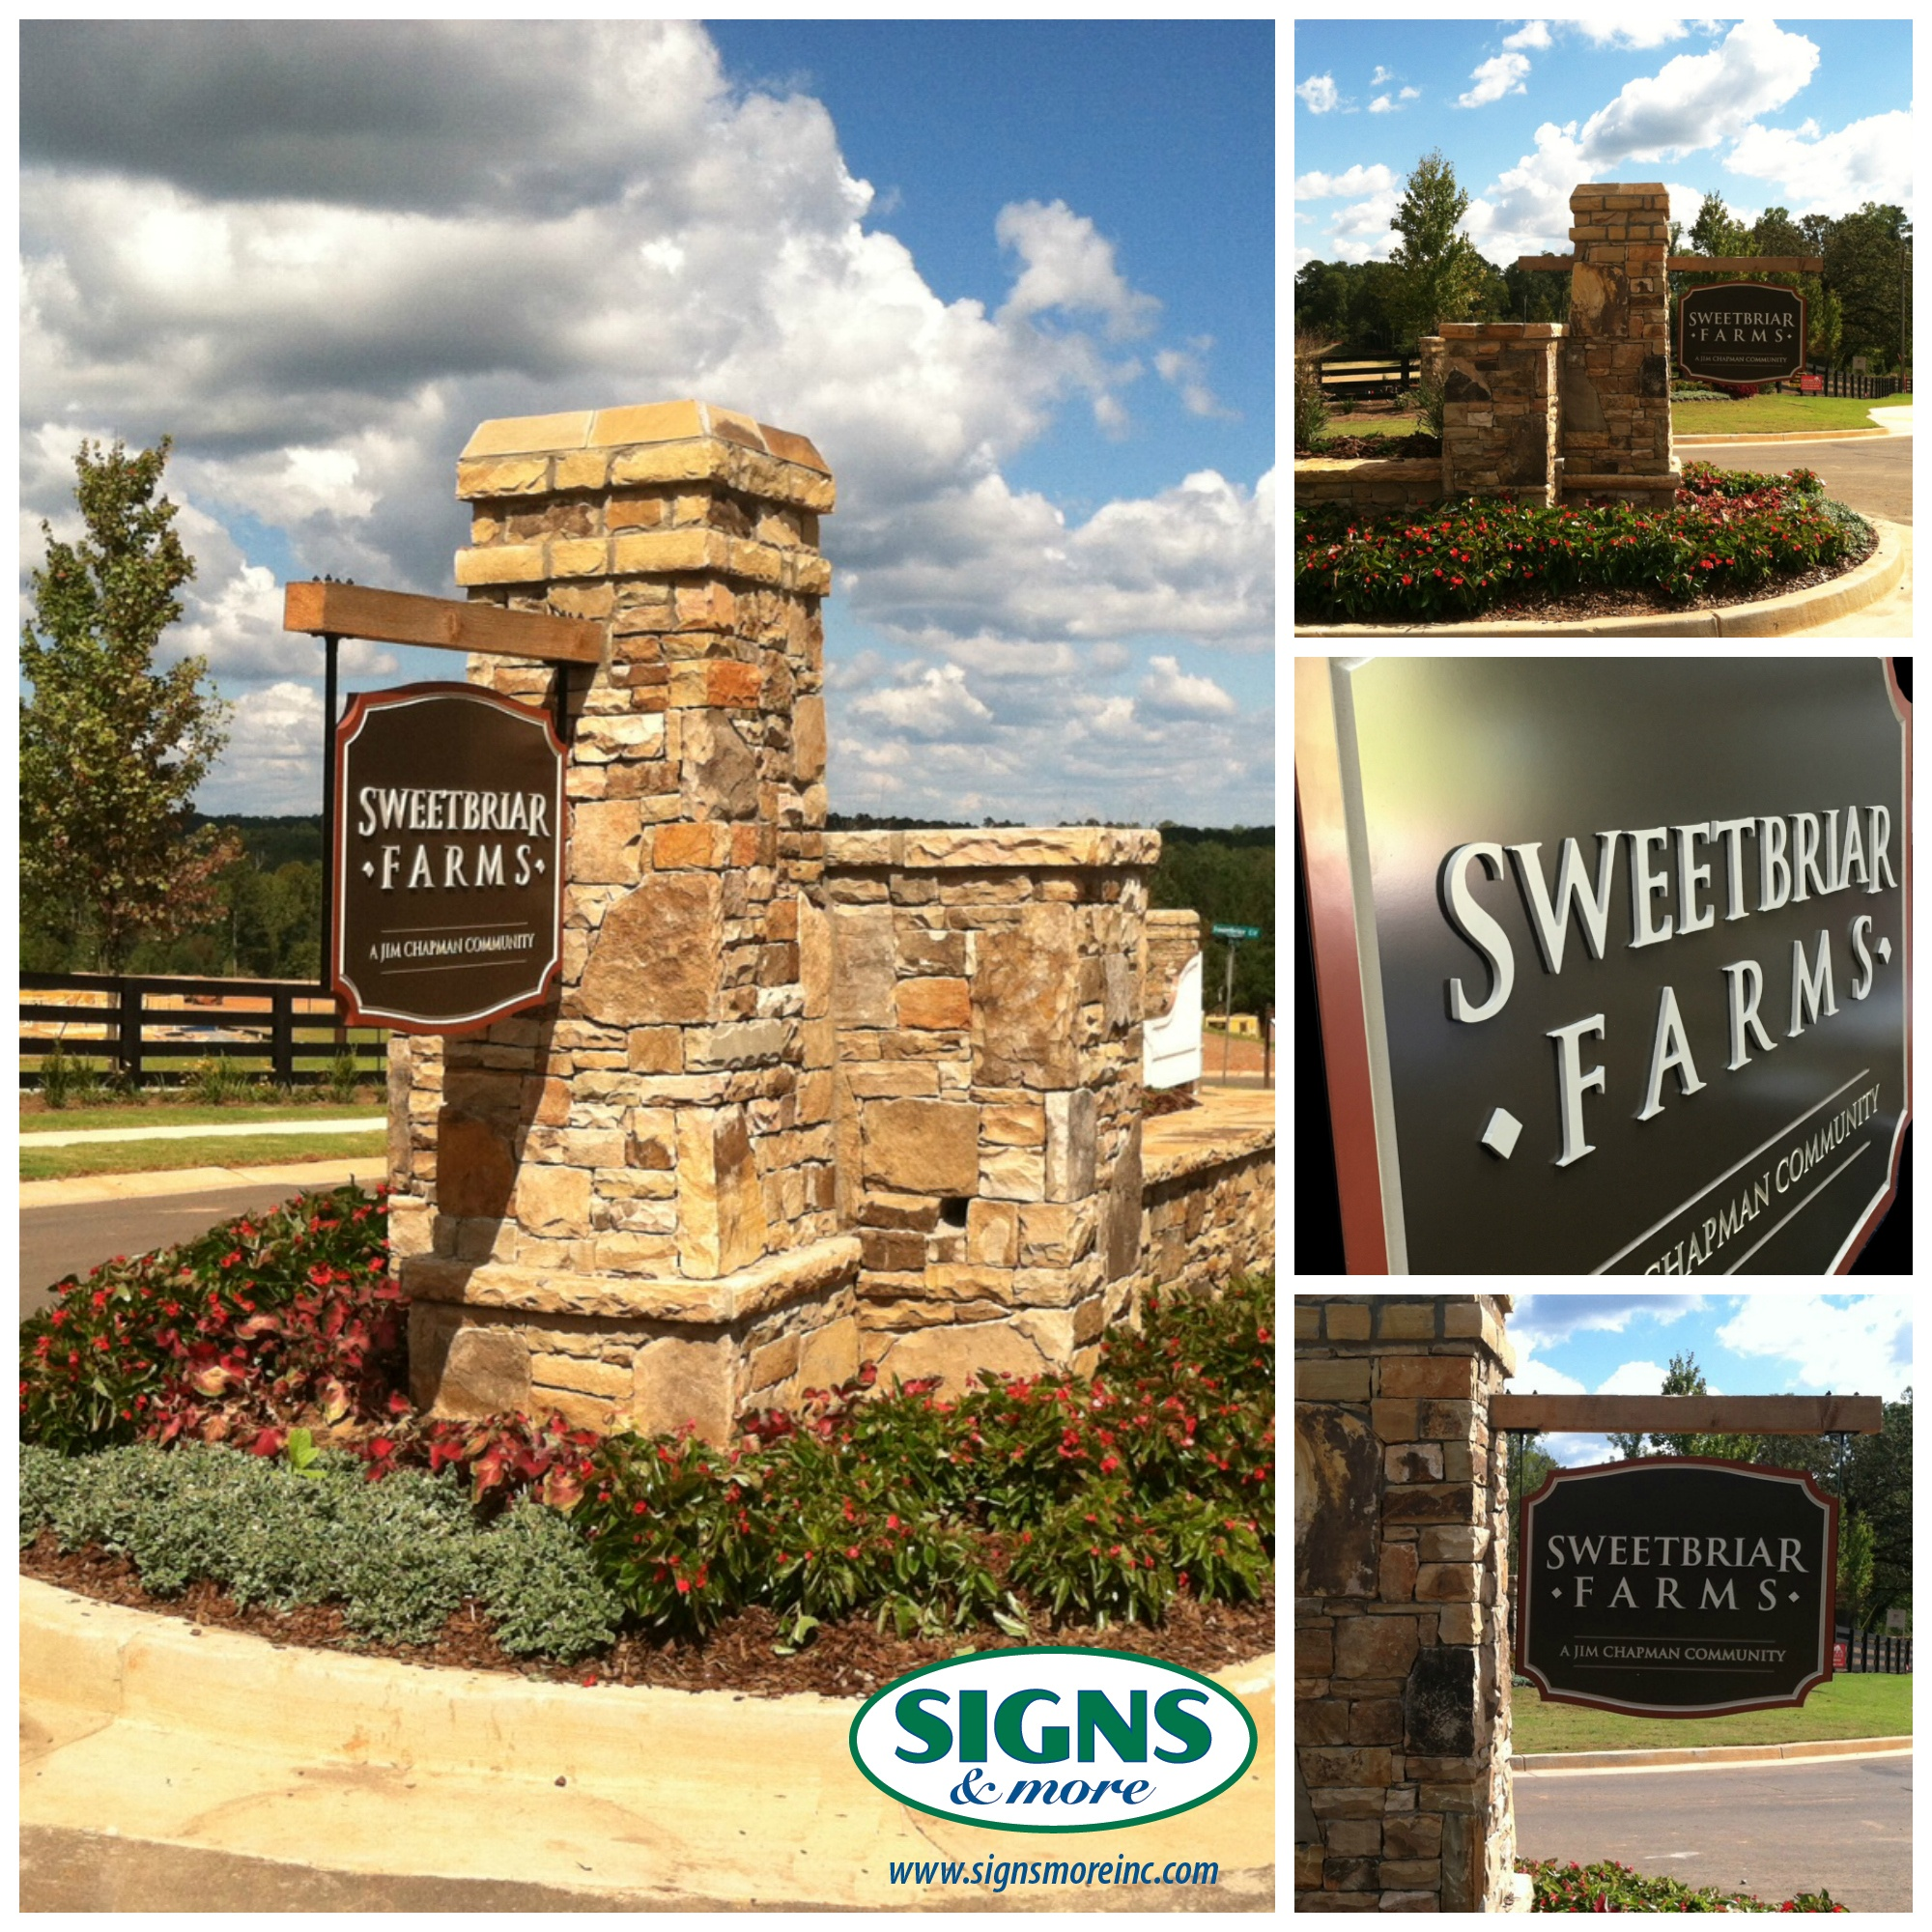 GA_Landscape_-_Sweet_Briar_Farms_-_Routed_PVC_Hanging_Sign_-_Collage-1.jpg